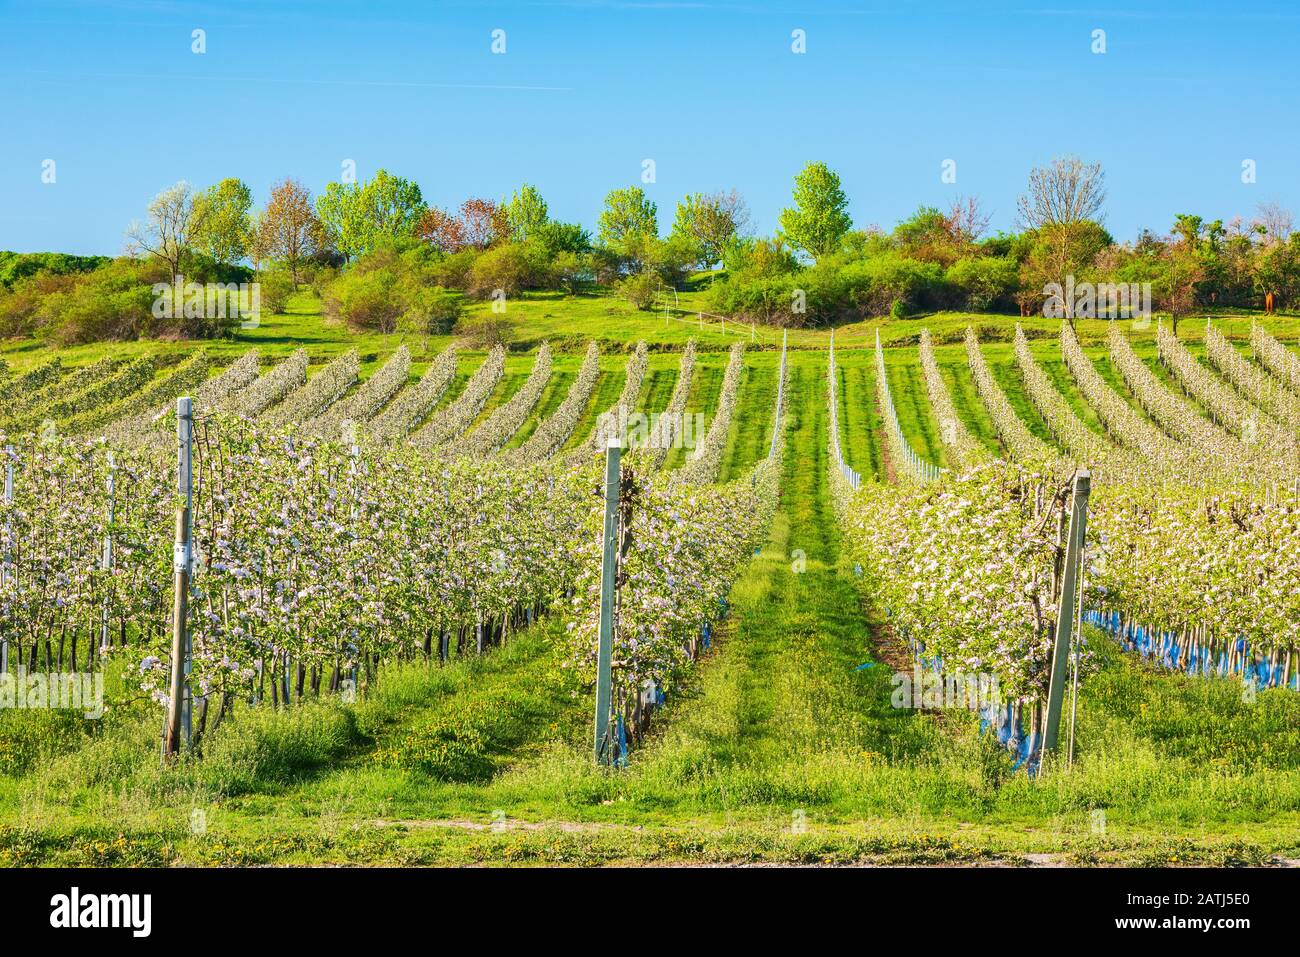 Fruit plantation in spring, flowering Apple trees (Malus domestica), fruit growing area, Aseleben, Saxony-Anhalt, Germany Stock Photo